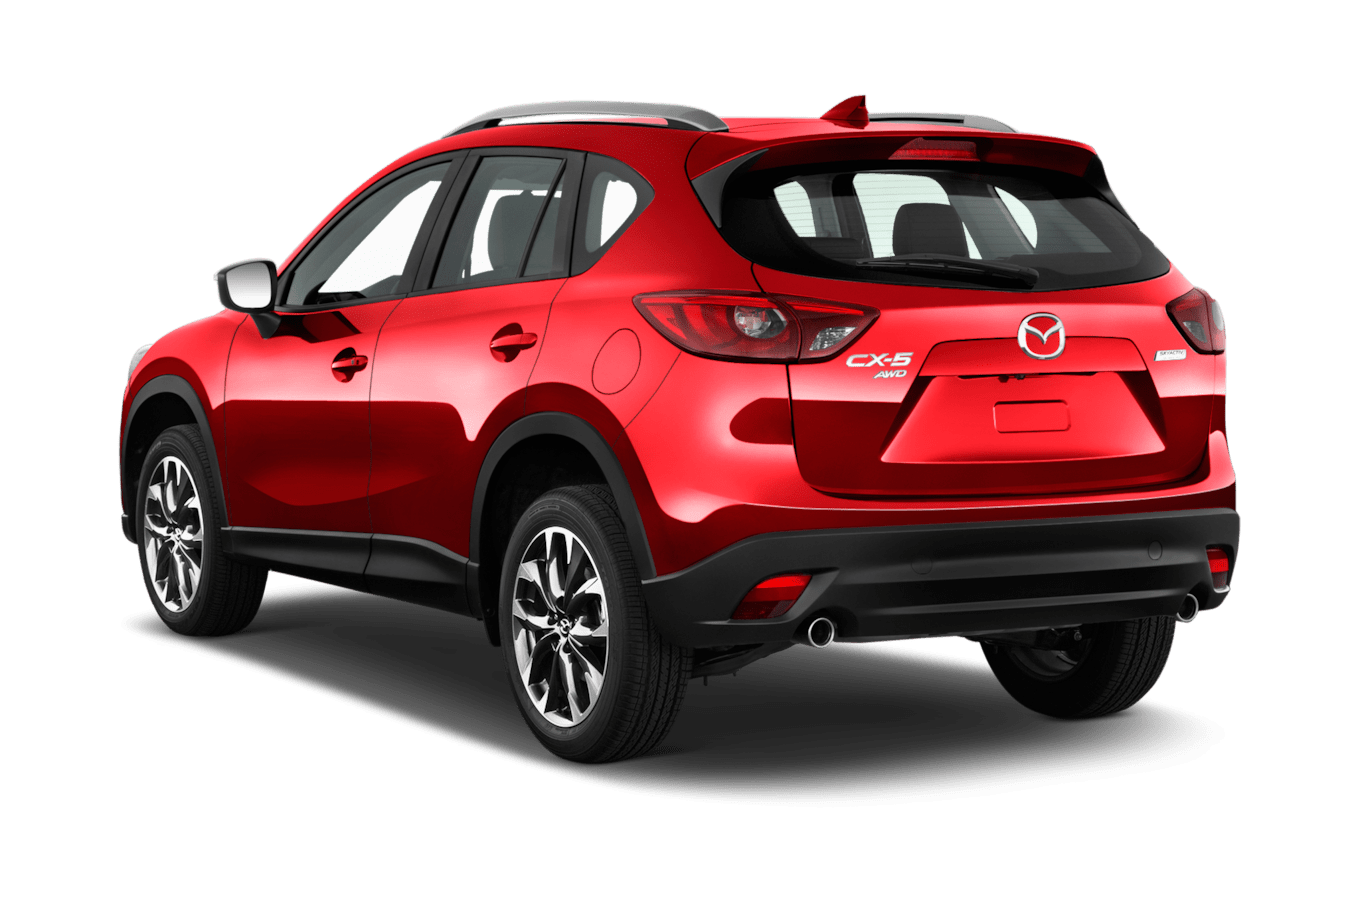 2016 Mazda Cx 3 Reviews And Rating Motor Trend  Autos Post